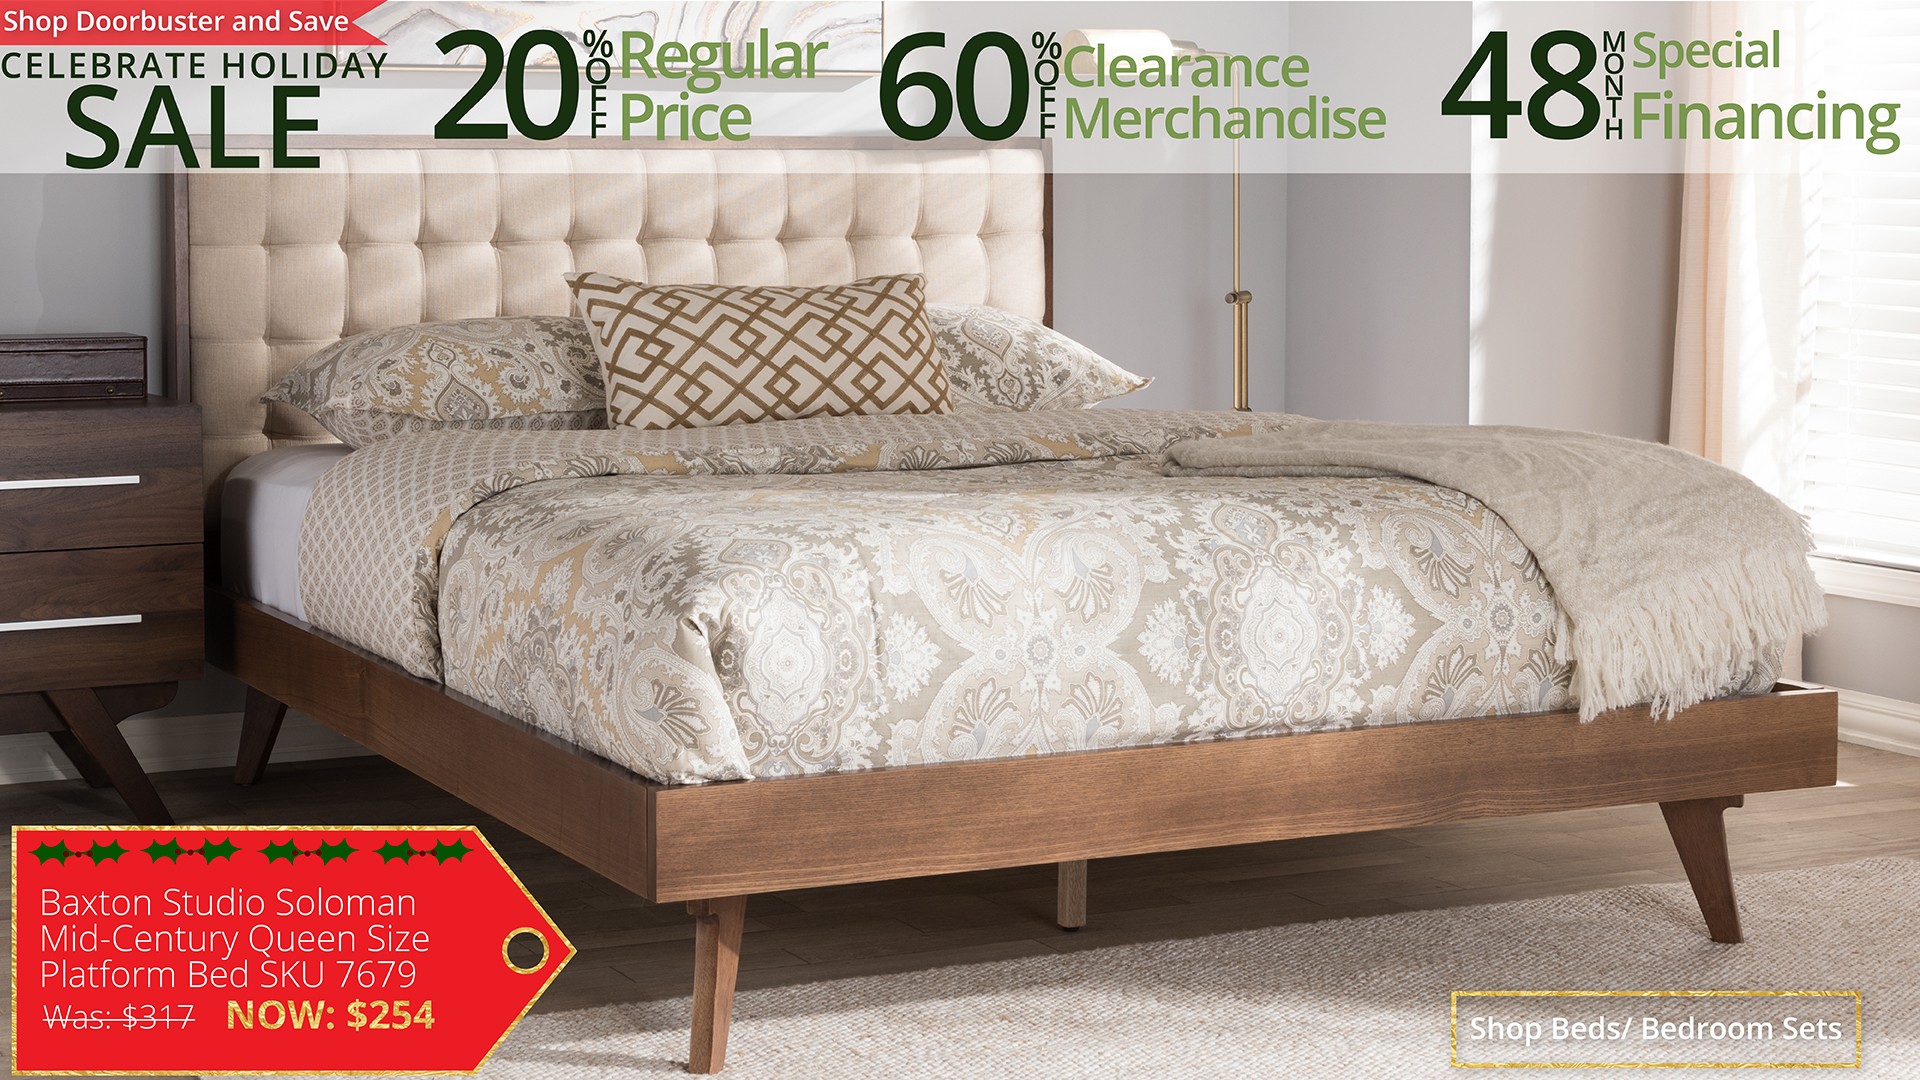 FURNITURE AT LOW PRICES YOU DONu0027T WANT TO MISS, SIGN UP TODAY FOR FUTURE  PROMOTIONAL DEALS, COUPONS AND LATEST TRENDS!